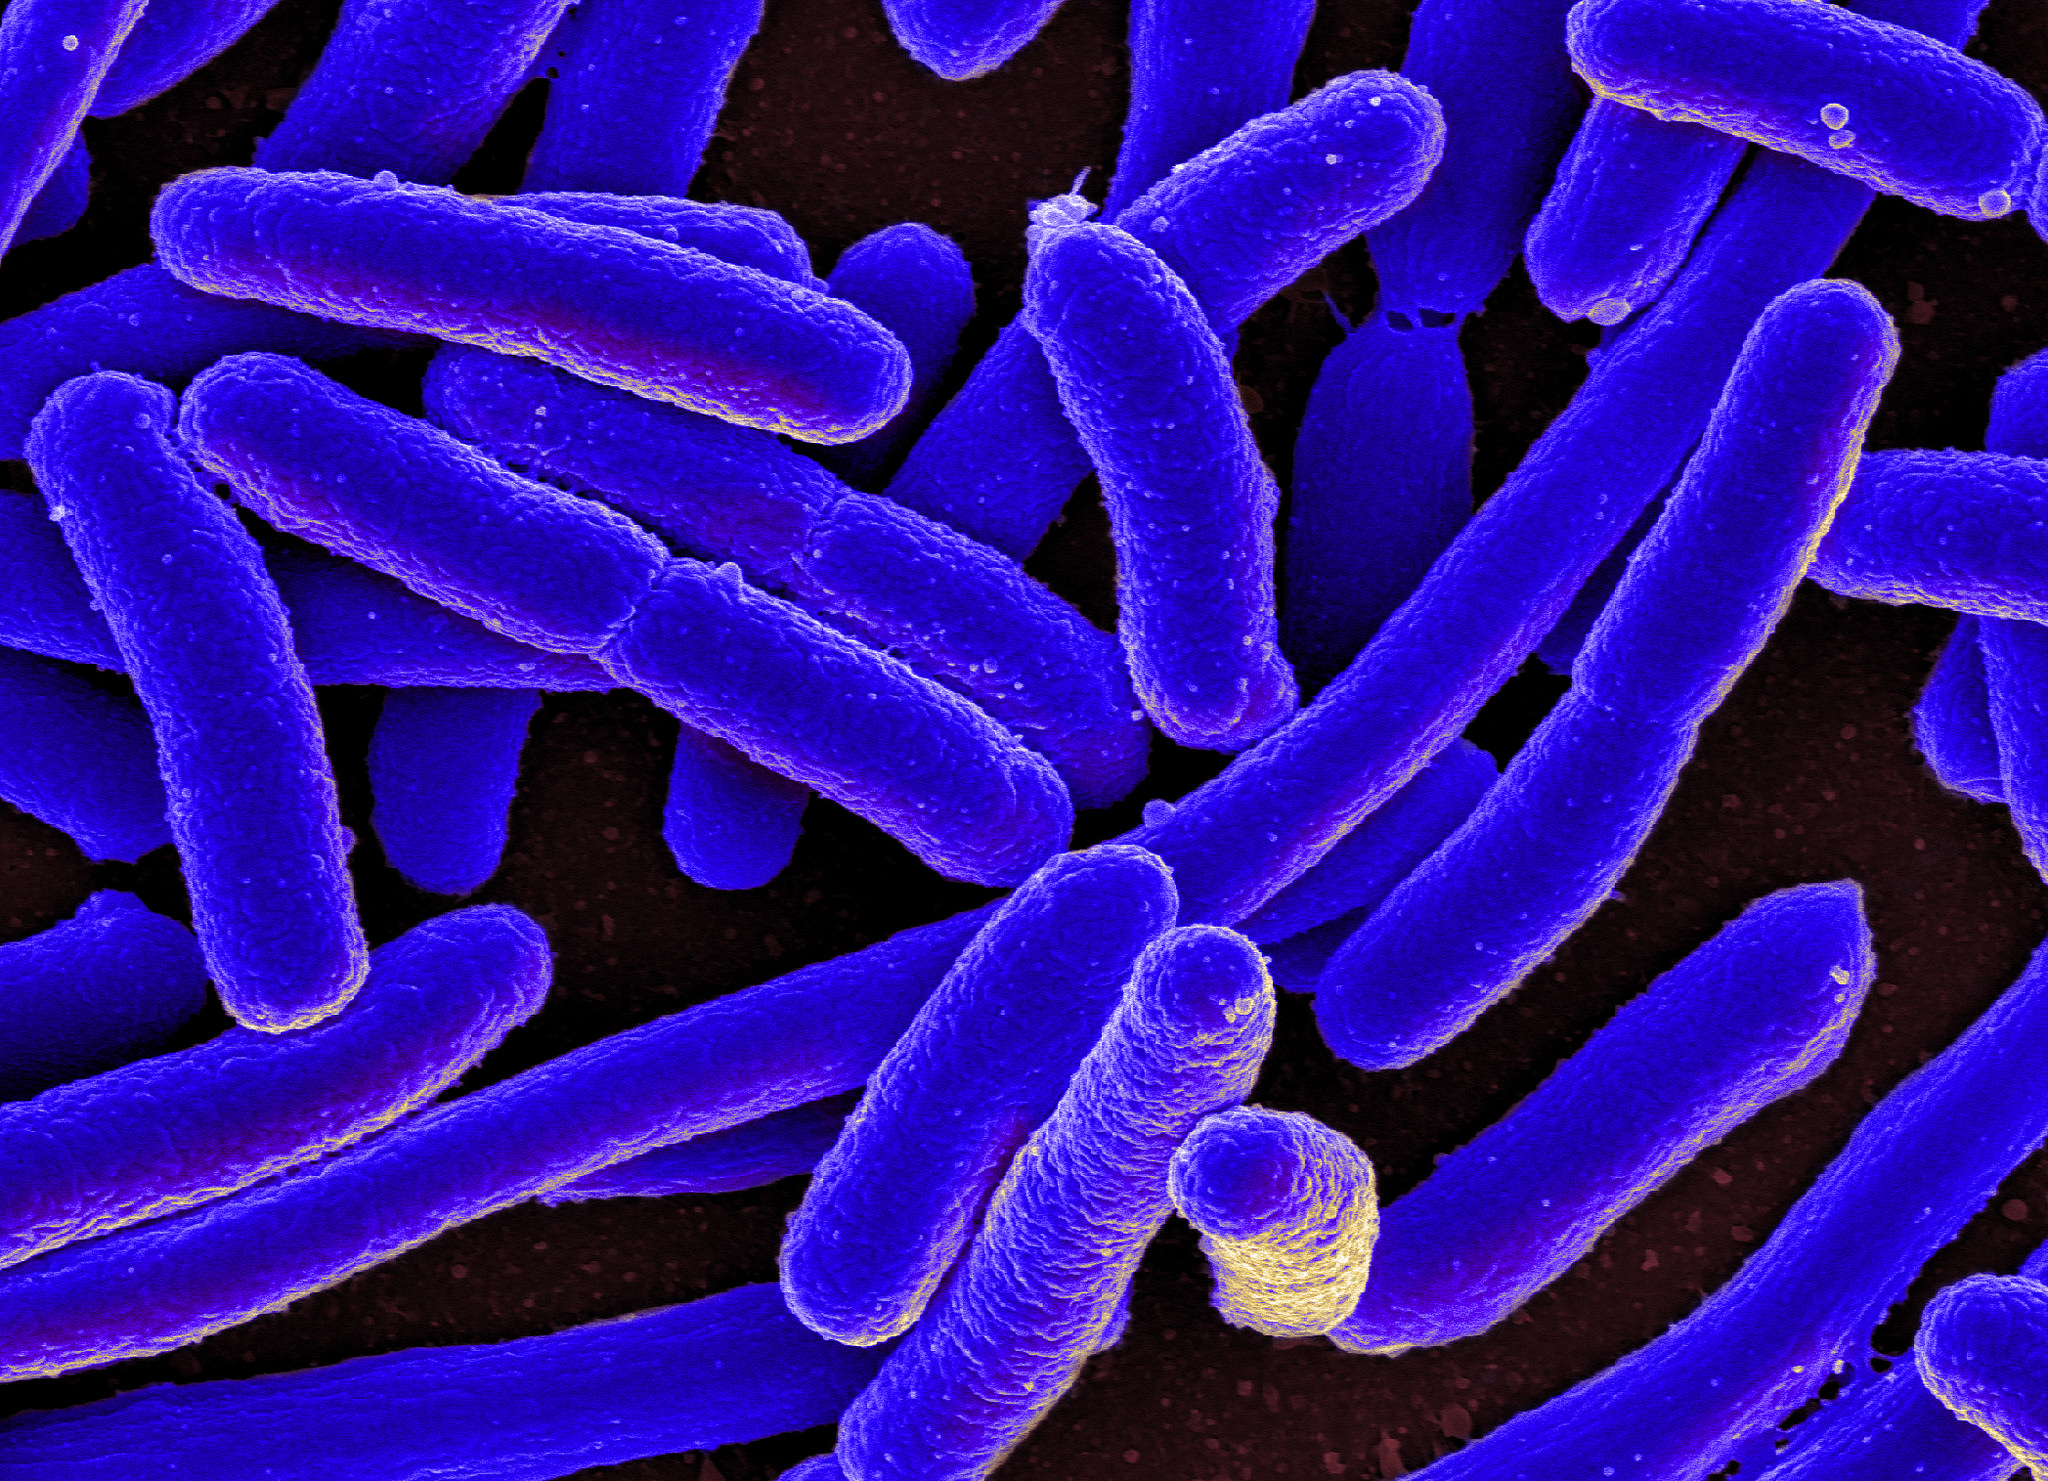 e. Coli bacteria zoomed in